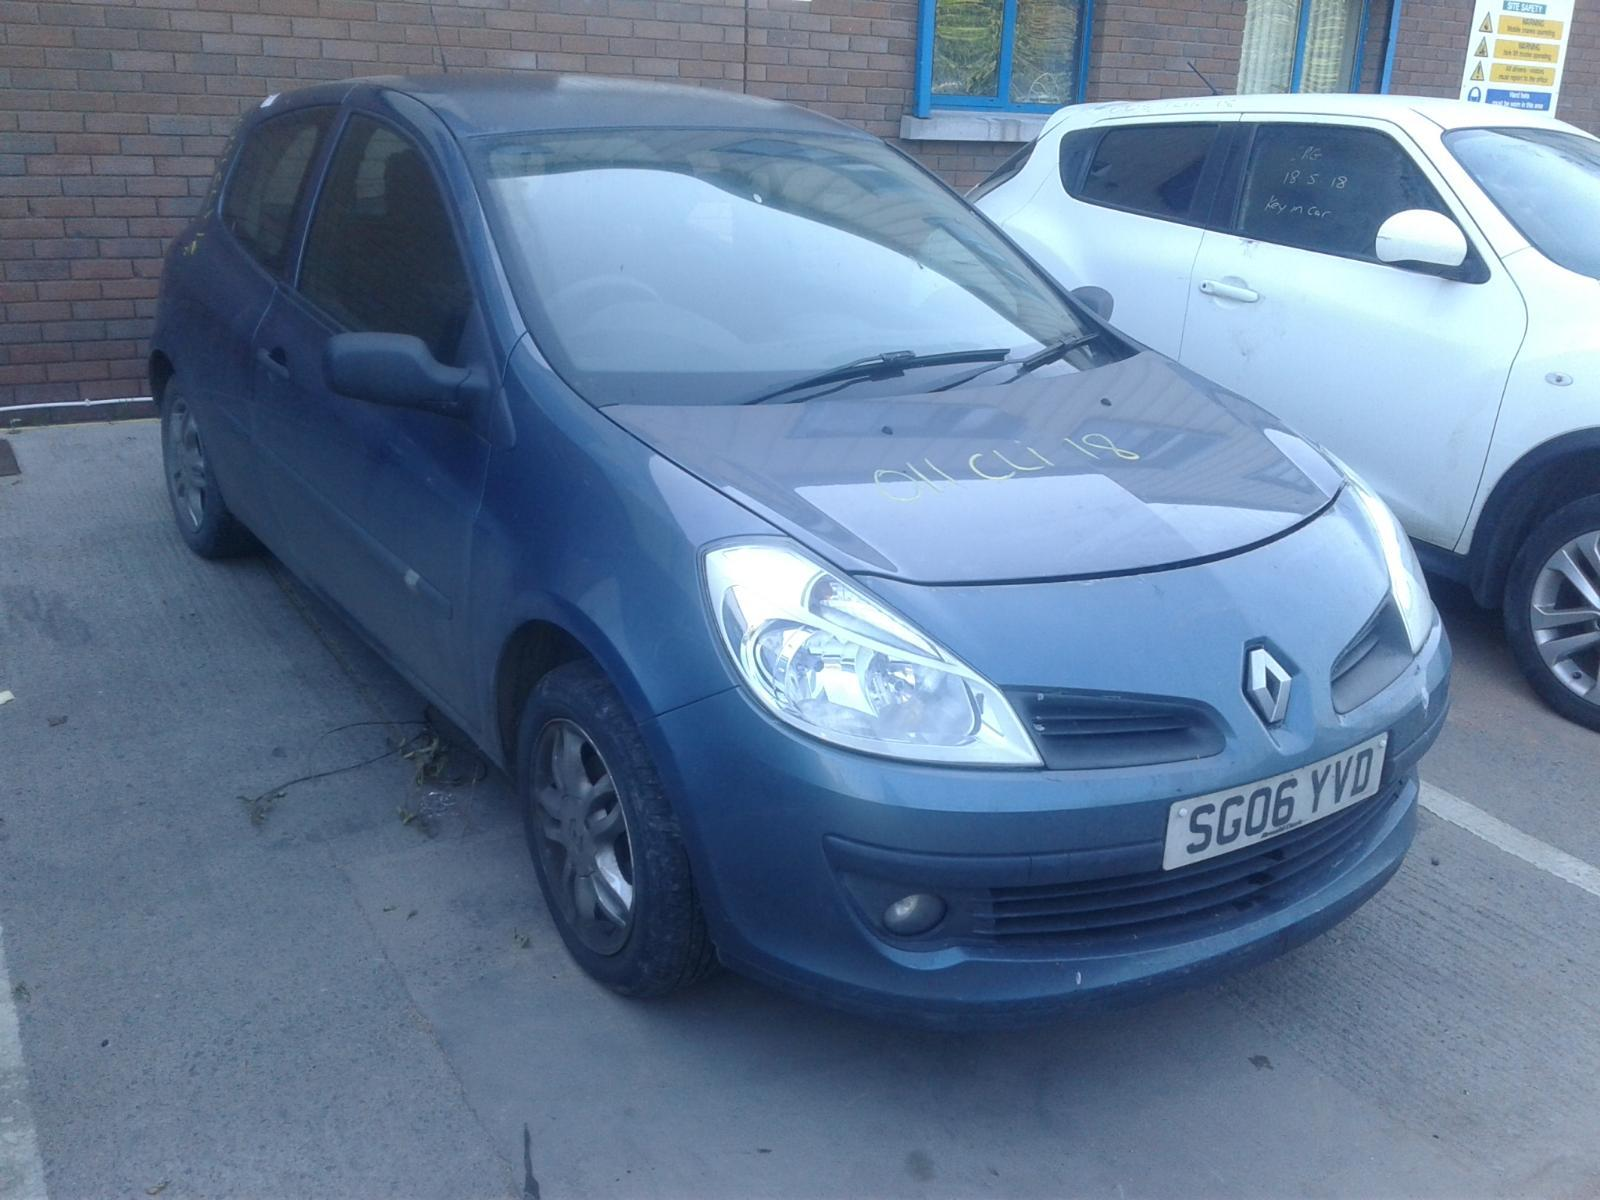 2006 Renault CLIO EXTREME 16V Image